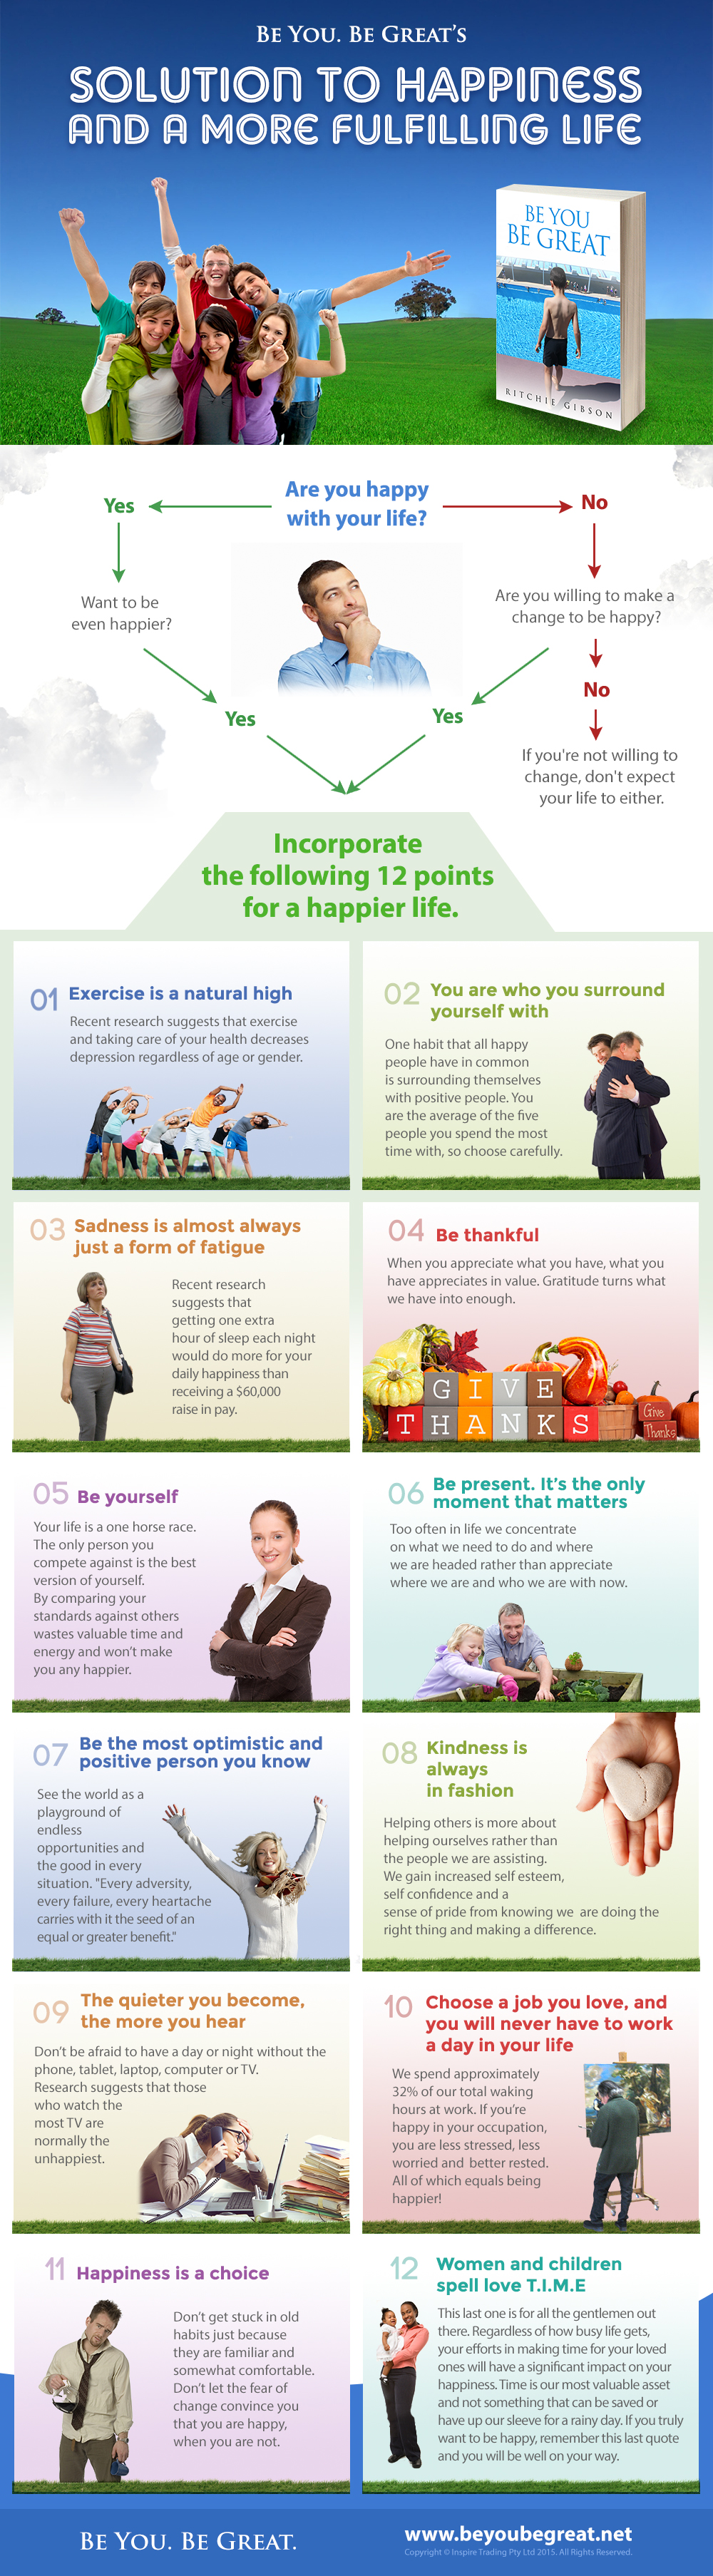 Happiness Infographic (2)